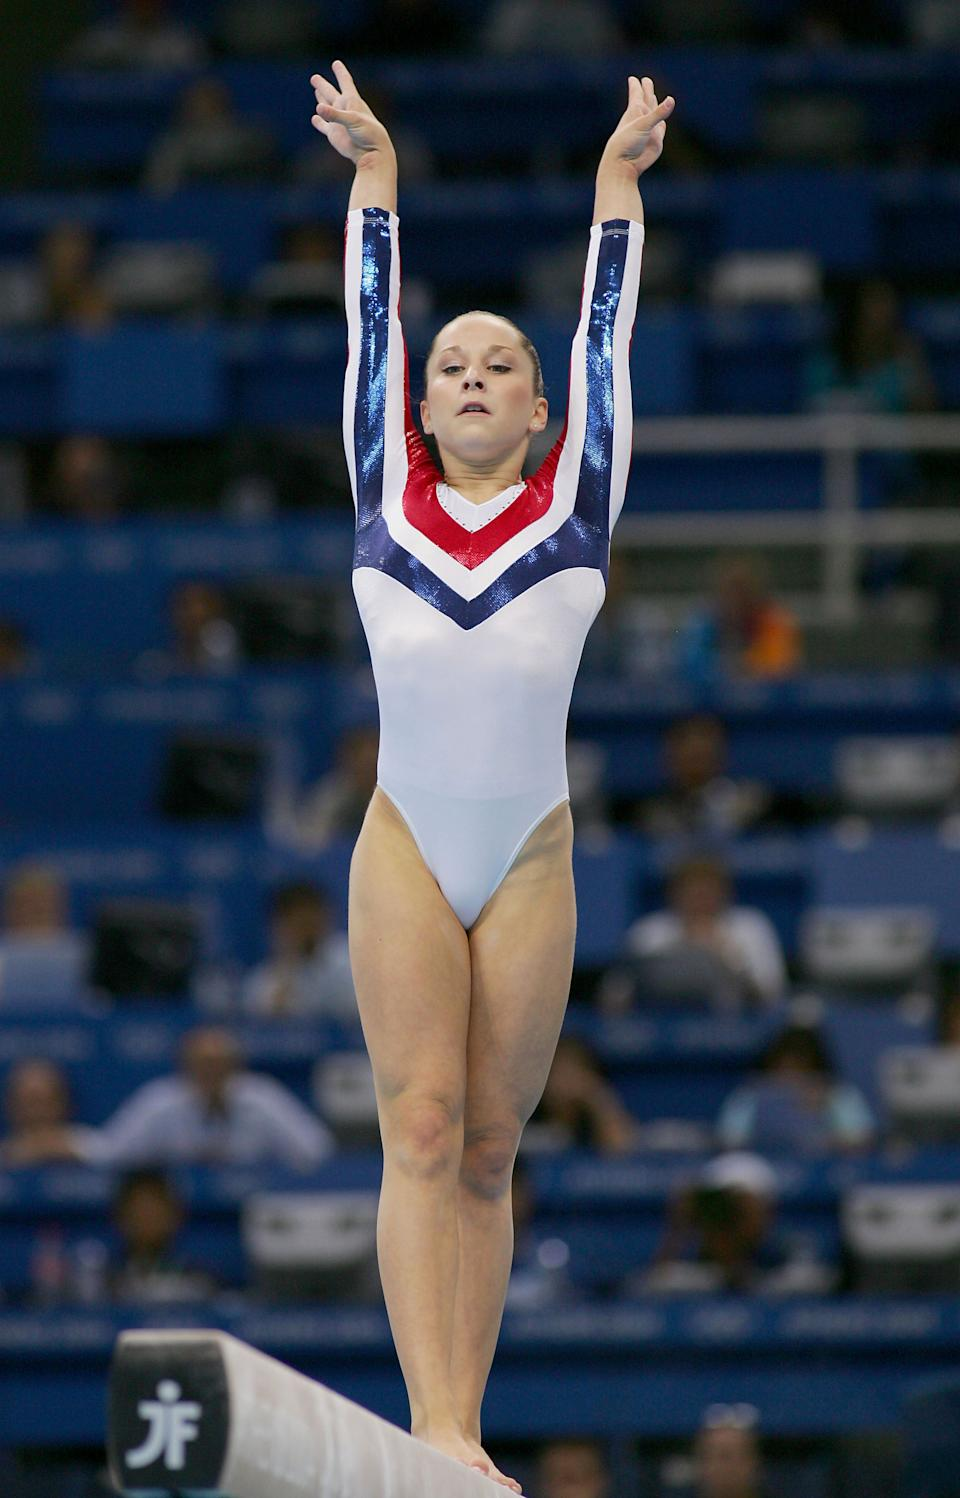 ATHENS - AUGUST 23: Carly Patterson of Unites States competes in the women's artistic gymnastics balance beam finals on August 23, 2004 during the Athens 2004 Summer Olympic Games at the Olympic Sports Complex Indoor Hall in Athens, Greece. (Photo by Ezra Shaw/Getty Images)